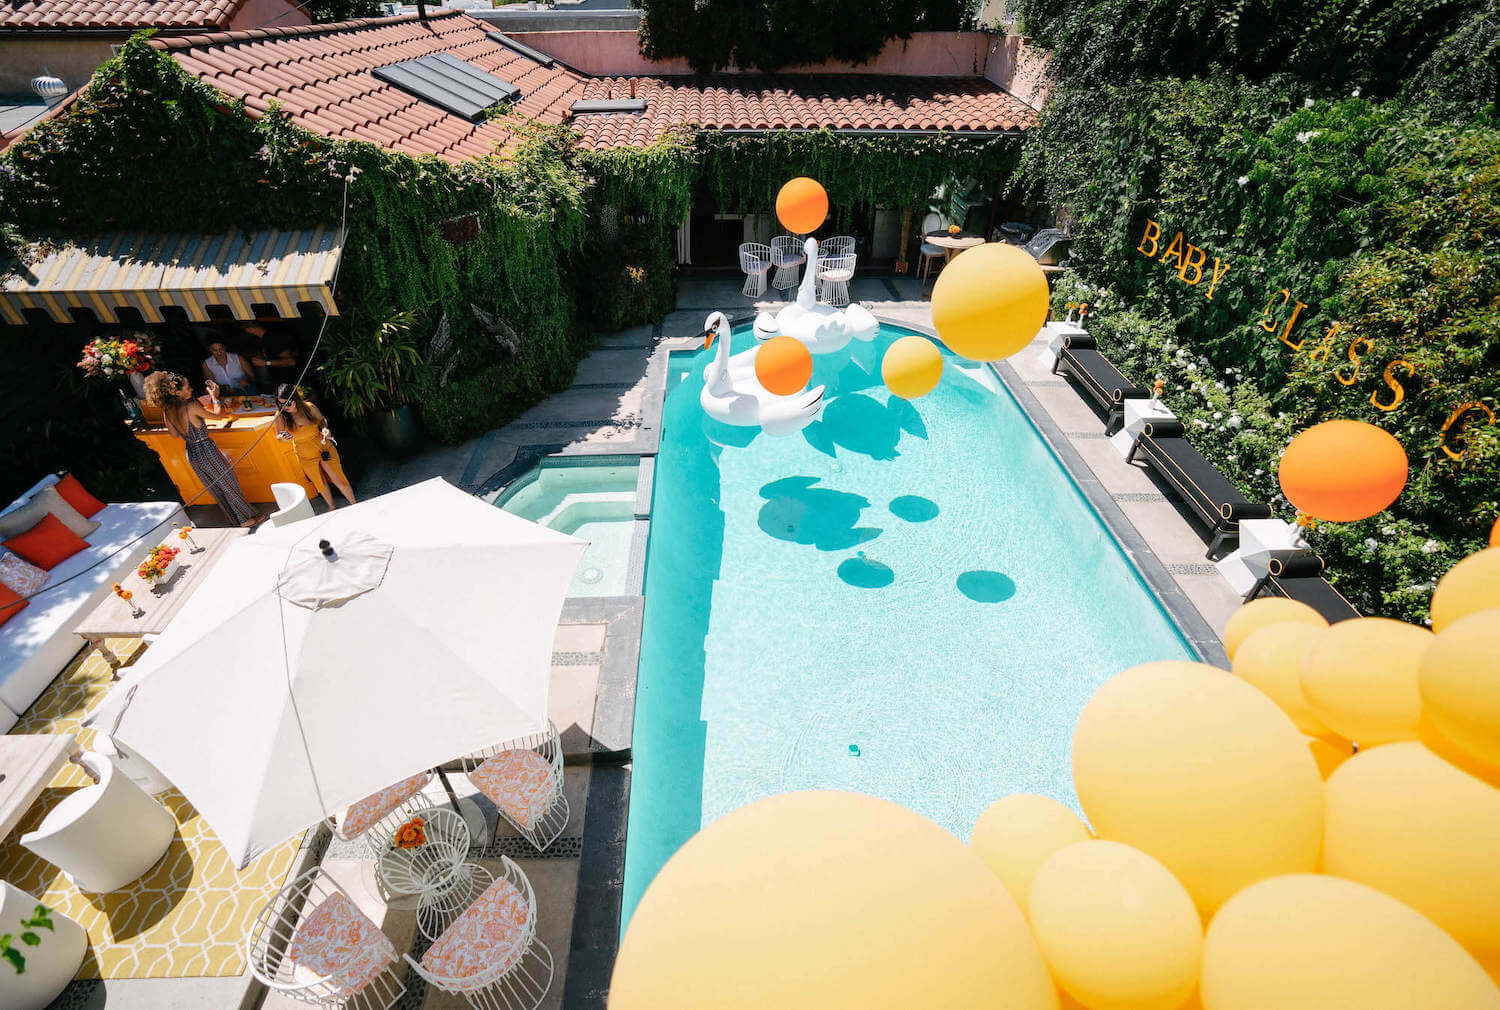 Pool baby shower Inspired by Veuve Clicquot